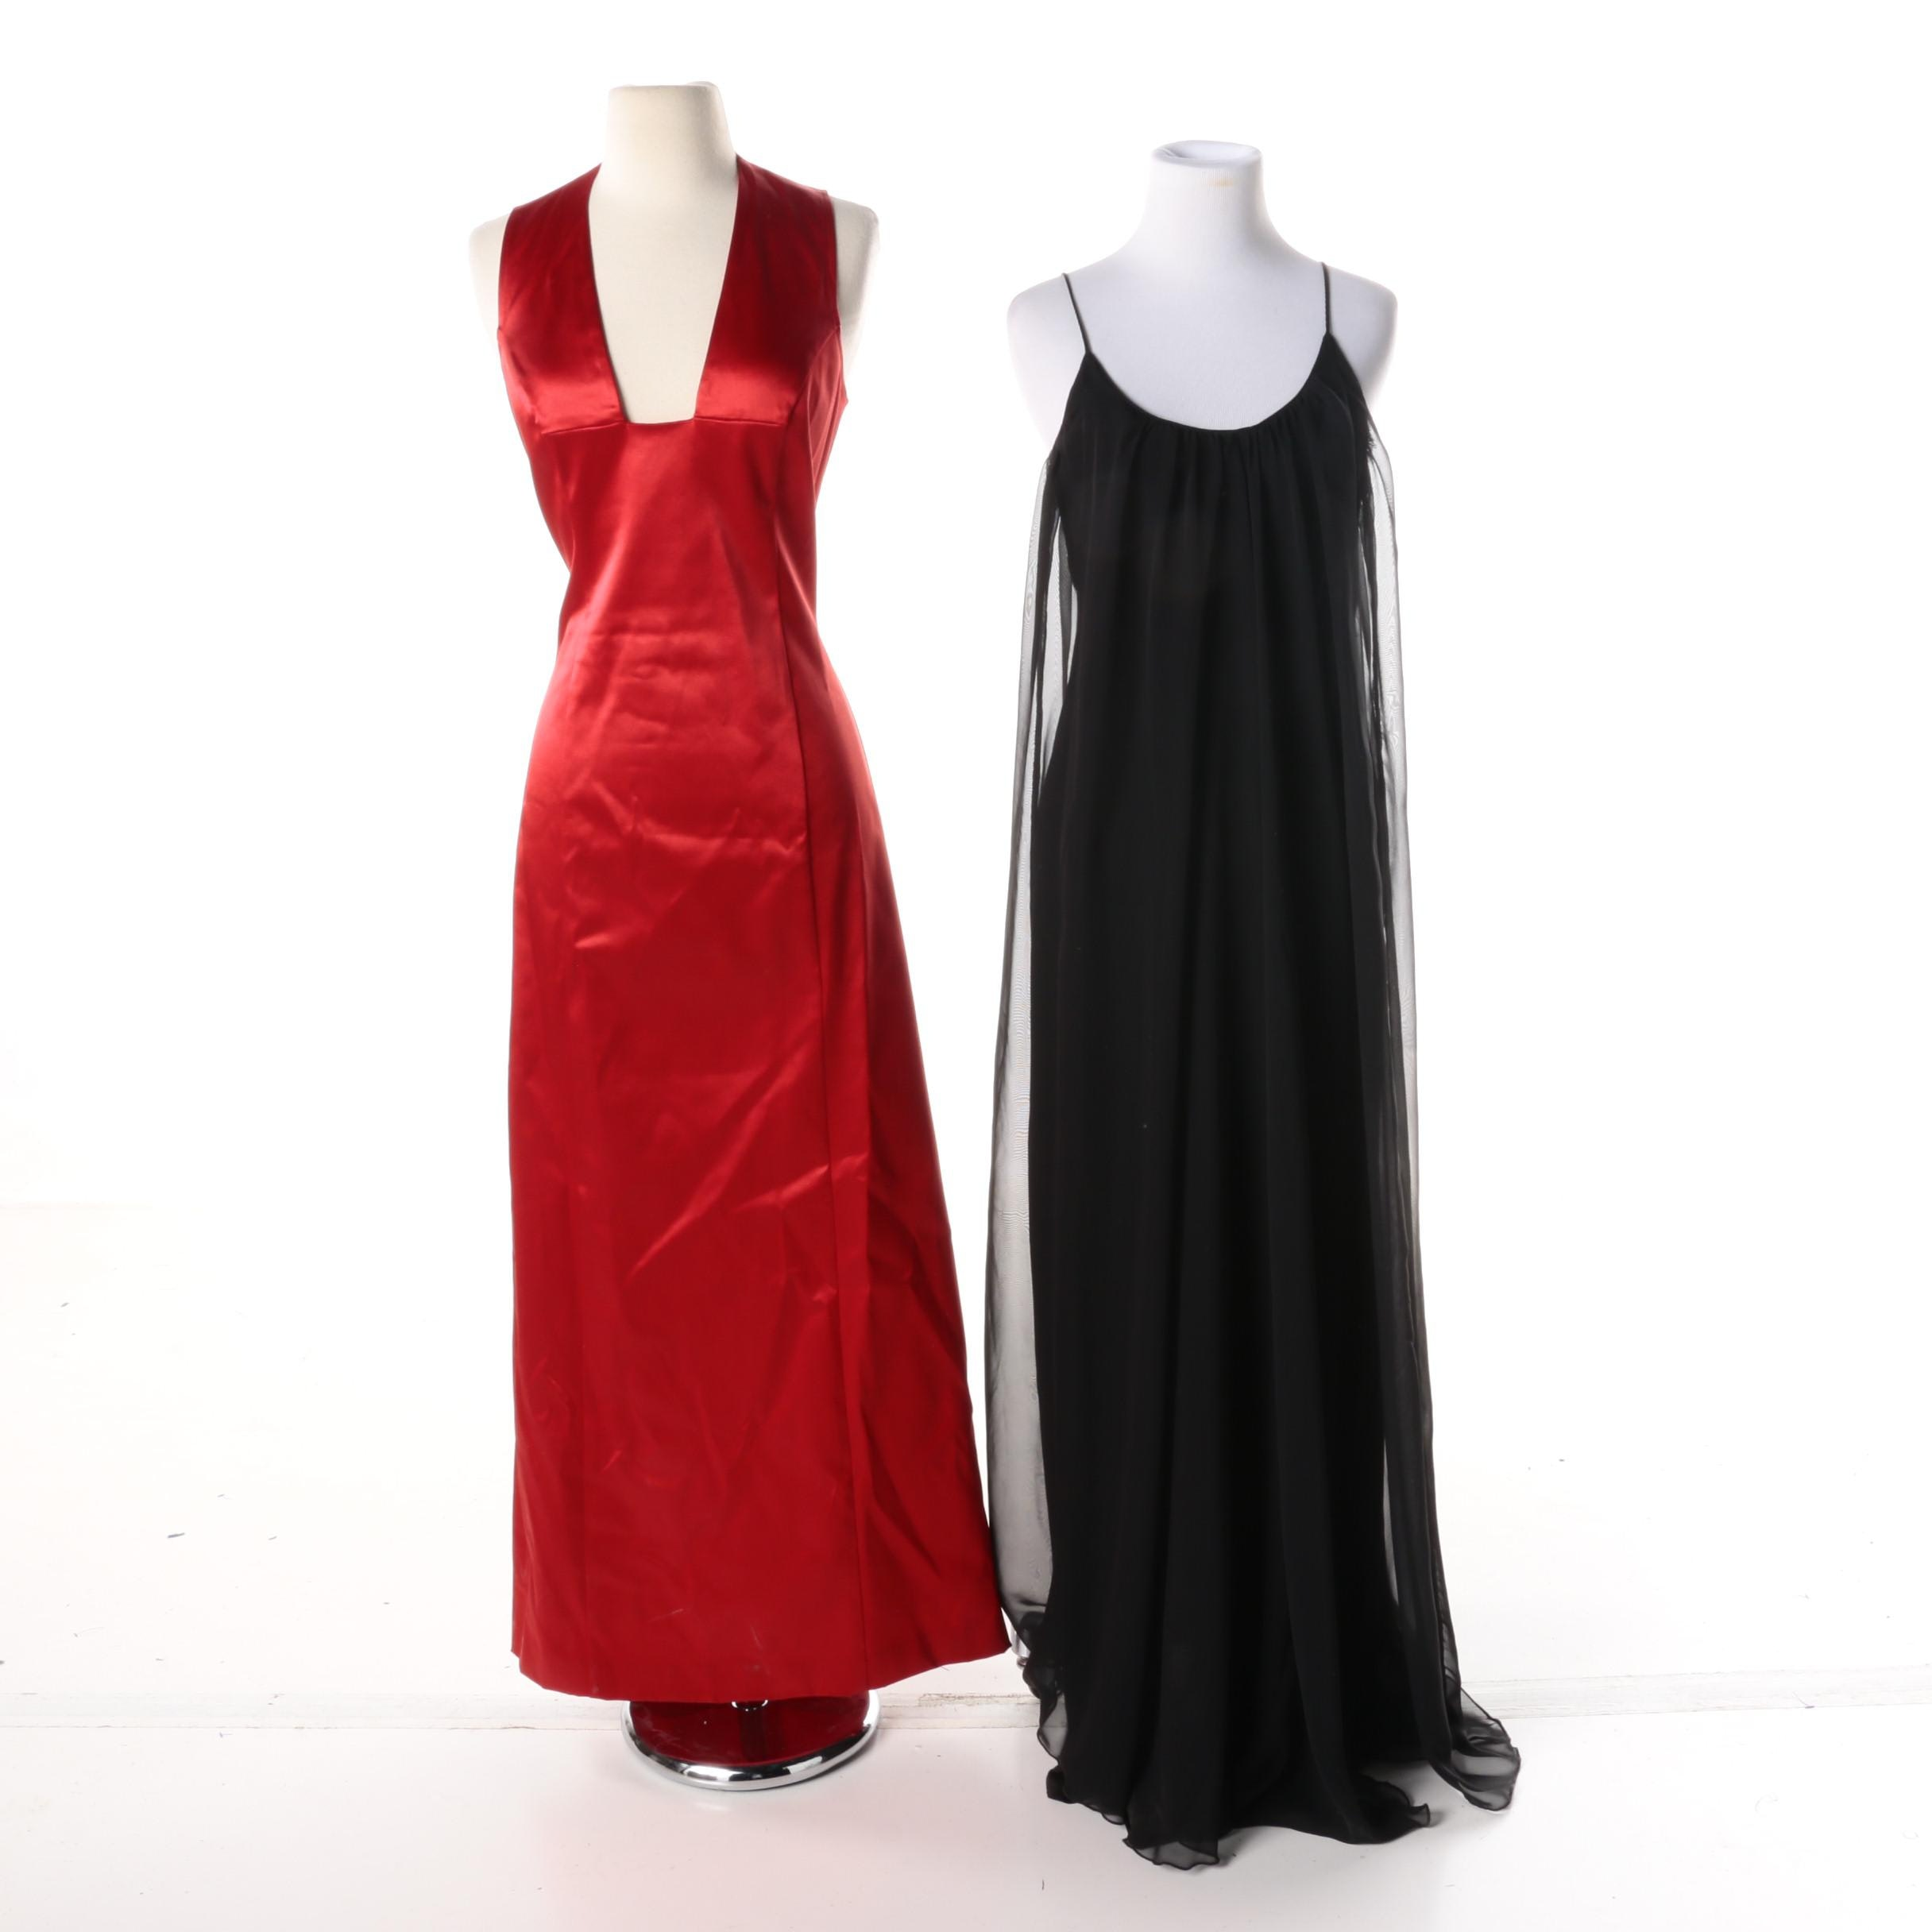 Women's Formal Sleeveless Gowns Including Maria Bianca Nero